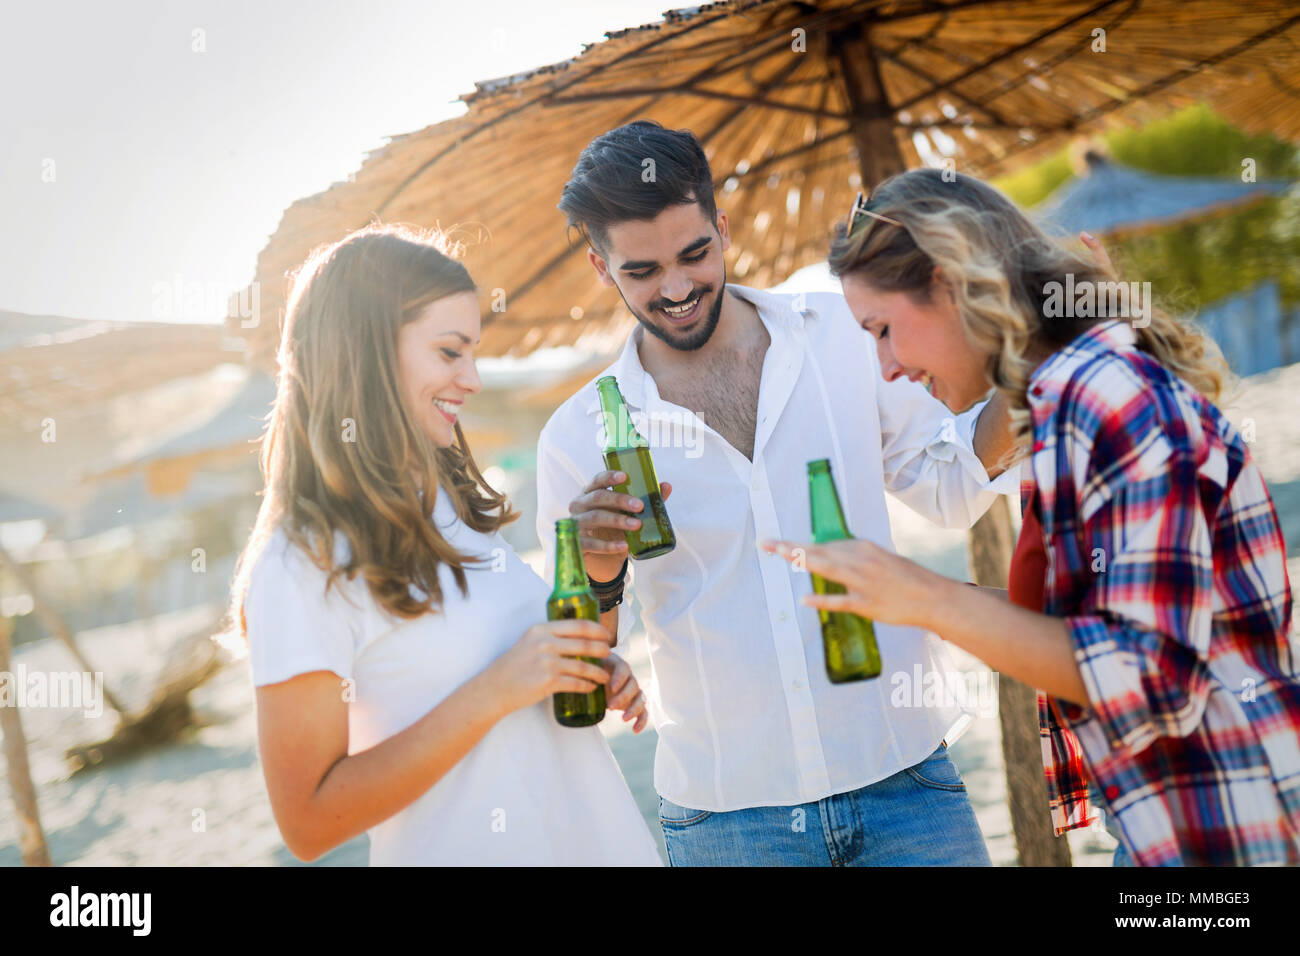 Beach party with friends. Cheerful young people spending nice time together on the beach - Stock Image